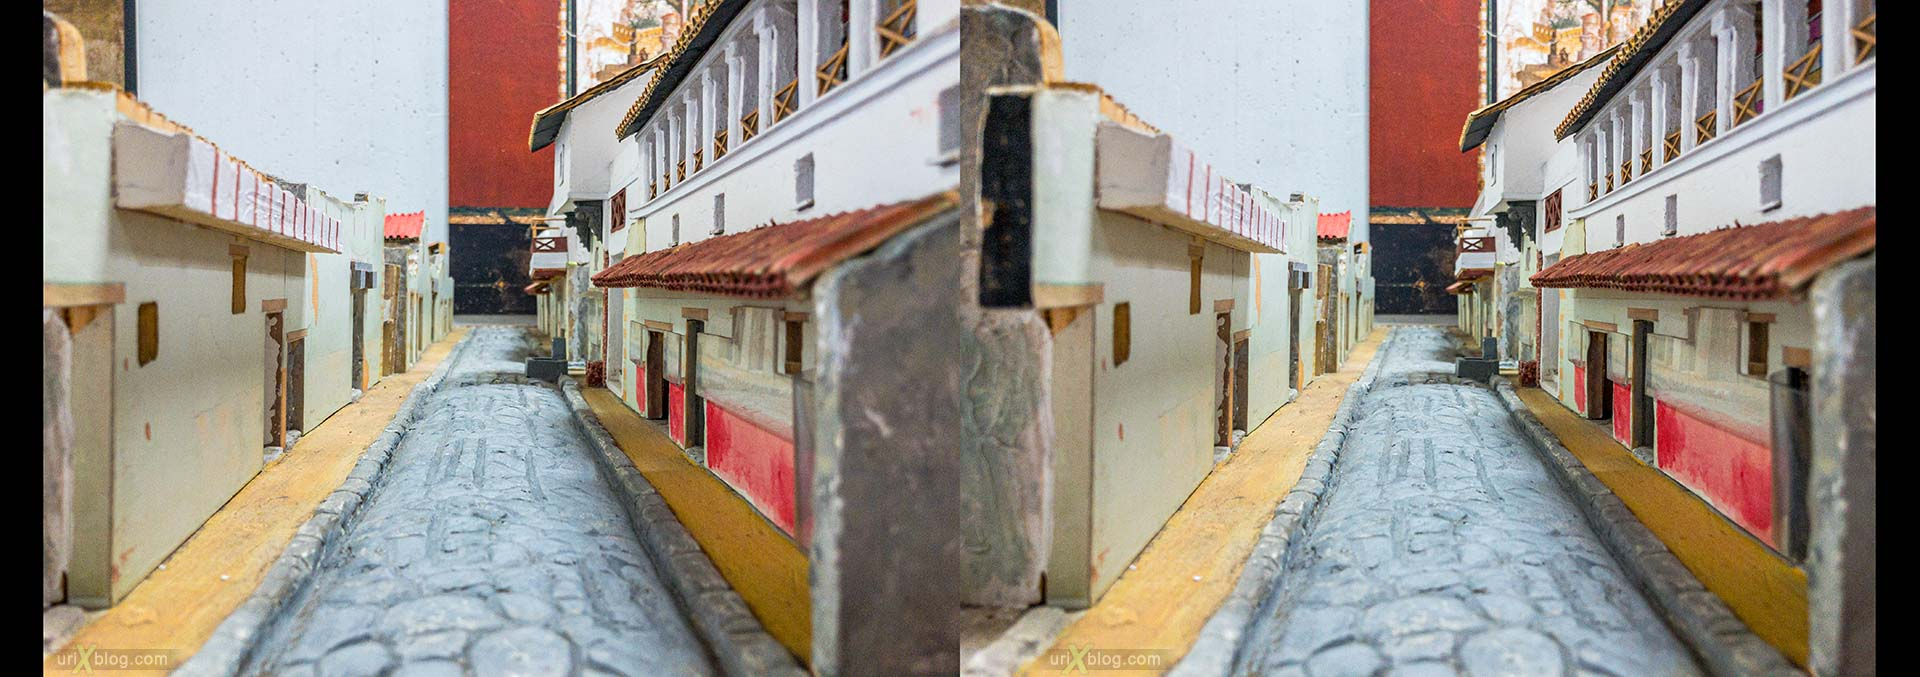 street, model, Museum, excavations, villa Regina, Boscoreale, Pompei, Italy, 3D, stereo pair, cross-eyed, crossview, cross view stereo pair, stereoscopic